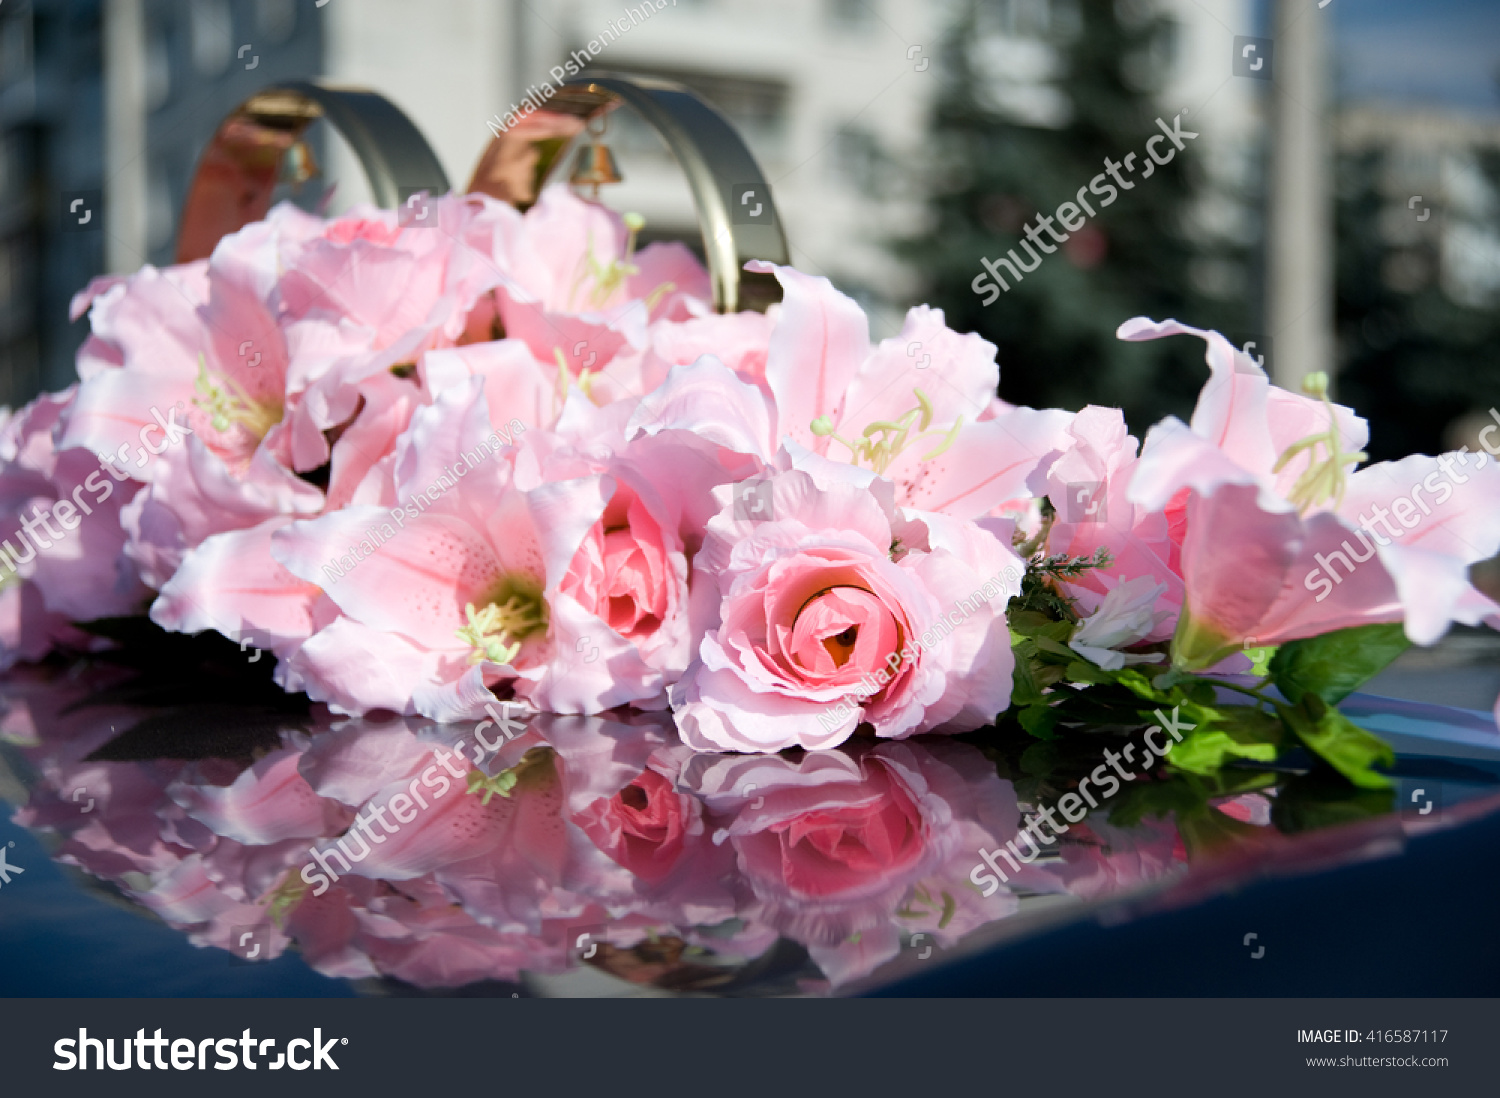 Wedding Car Decoration Pink Flowers Stock Photo (Royalty Free ...